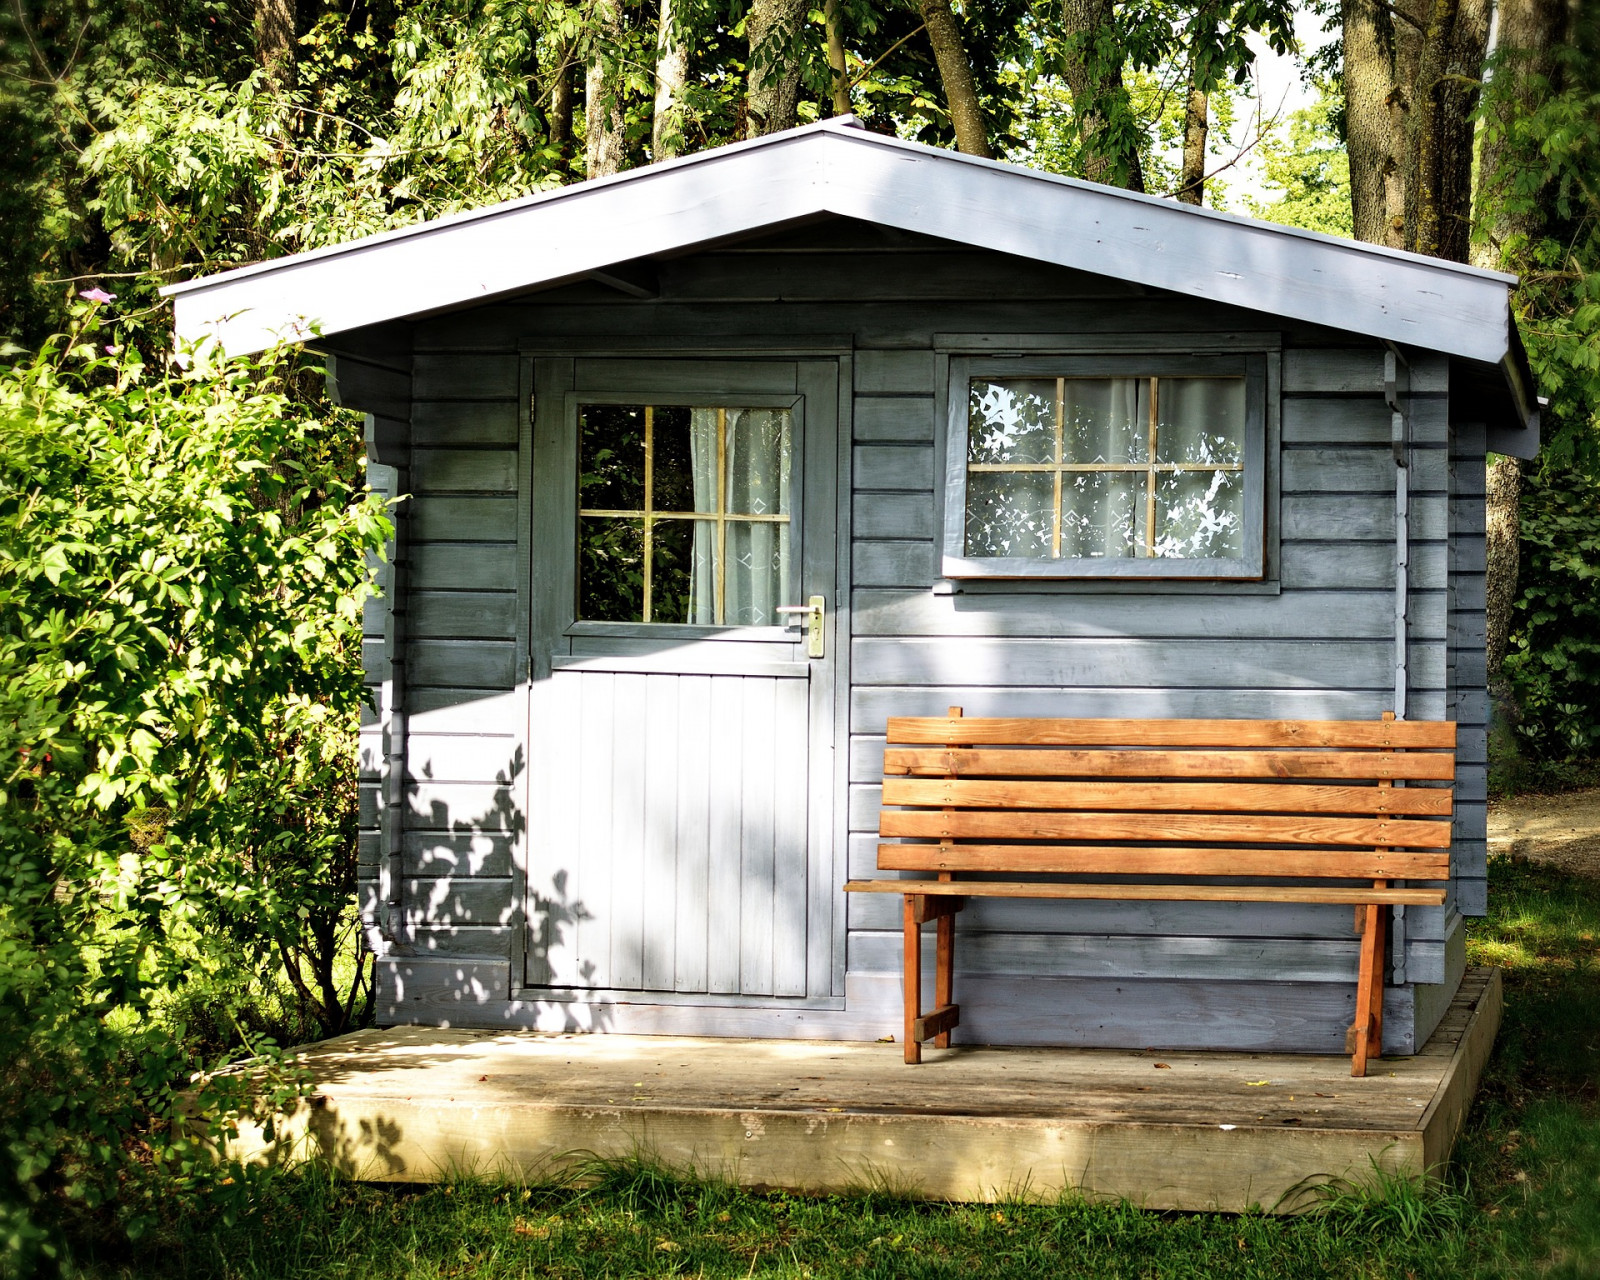 How Much Does it Cost to Build a Shed or Playhouse?